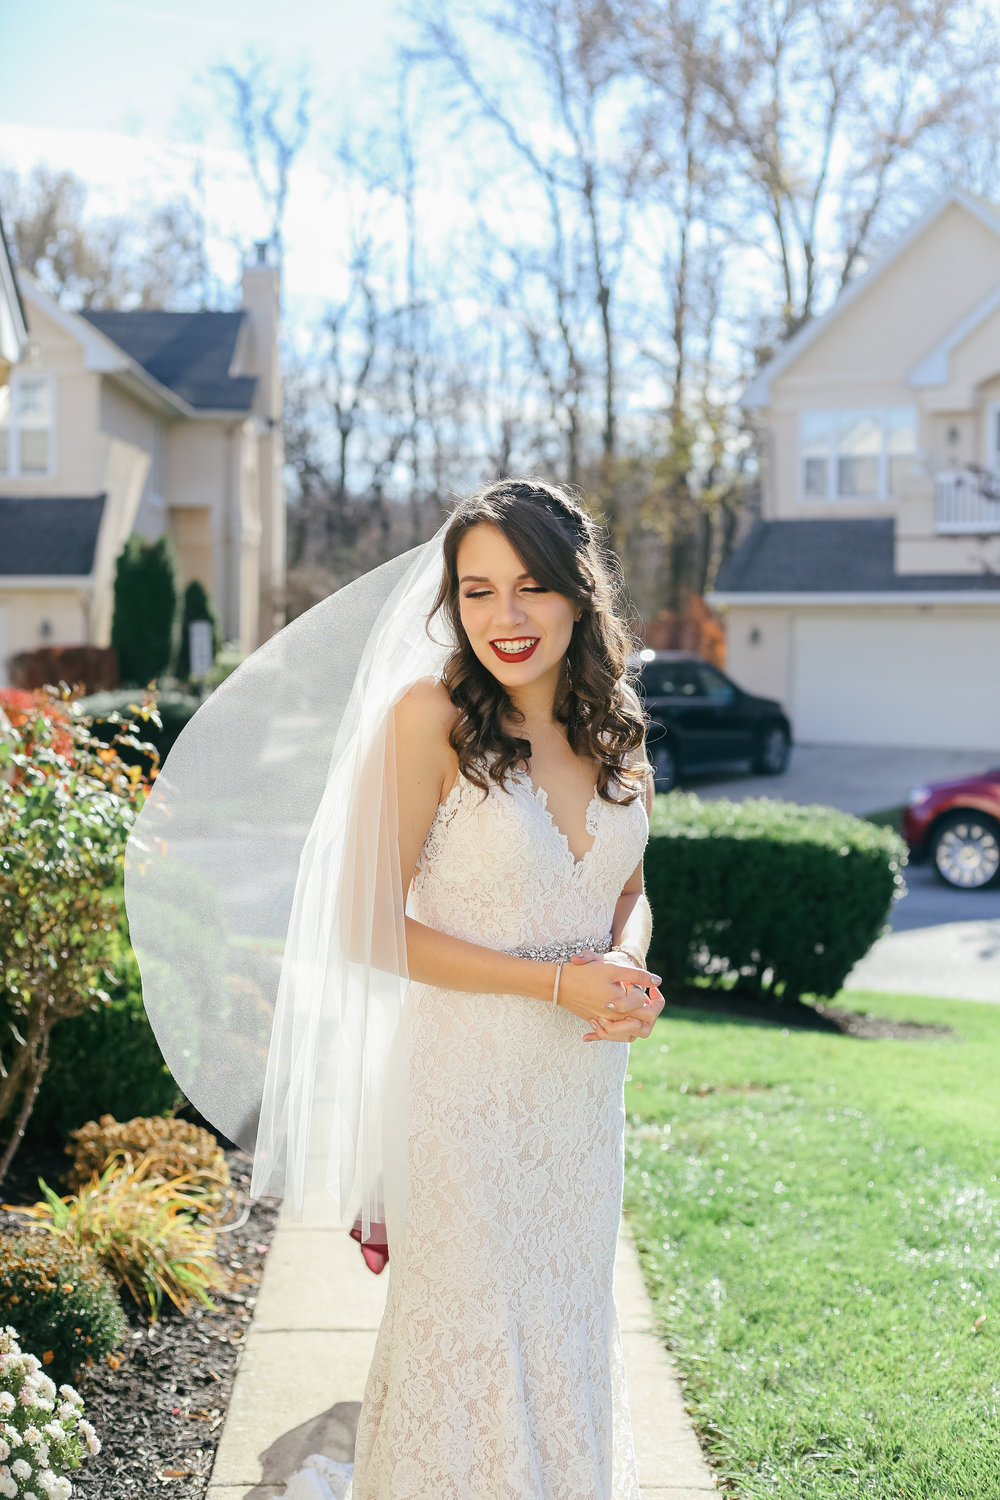 caitlin-elliott-new-jersey-wedding-photographer-portrait-suzanne02